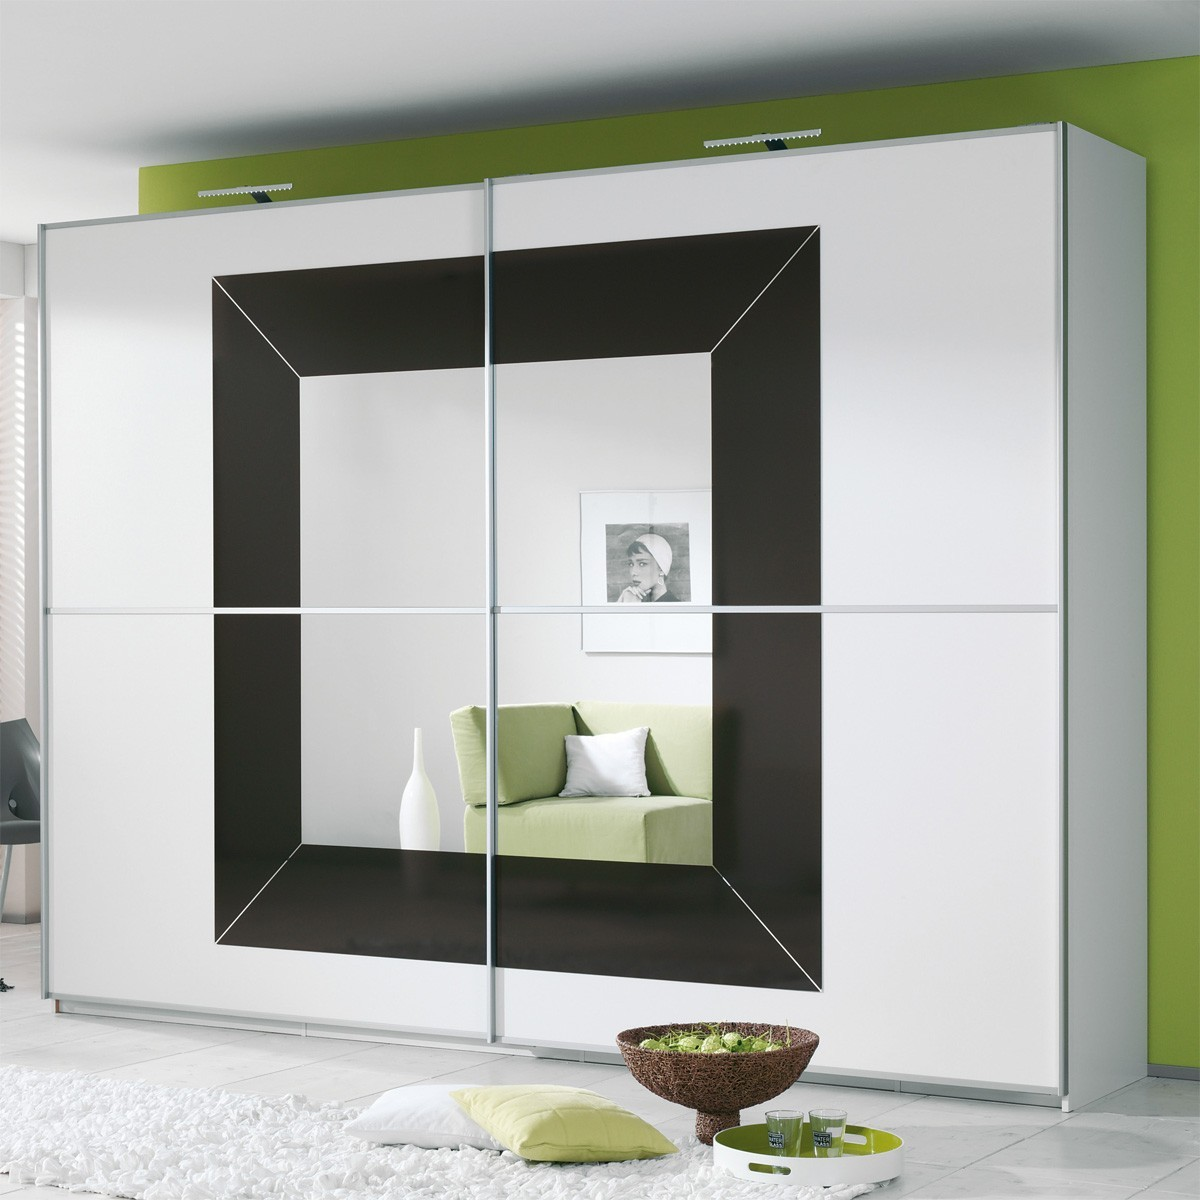 kleiderschrank schwarz weiss angebote auf waterige. Black Bedroom Furniture Sets. Home Design Ideas